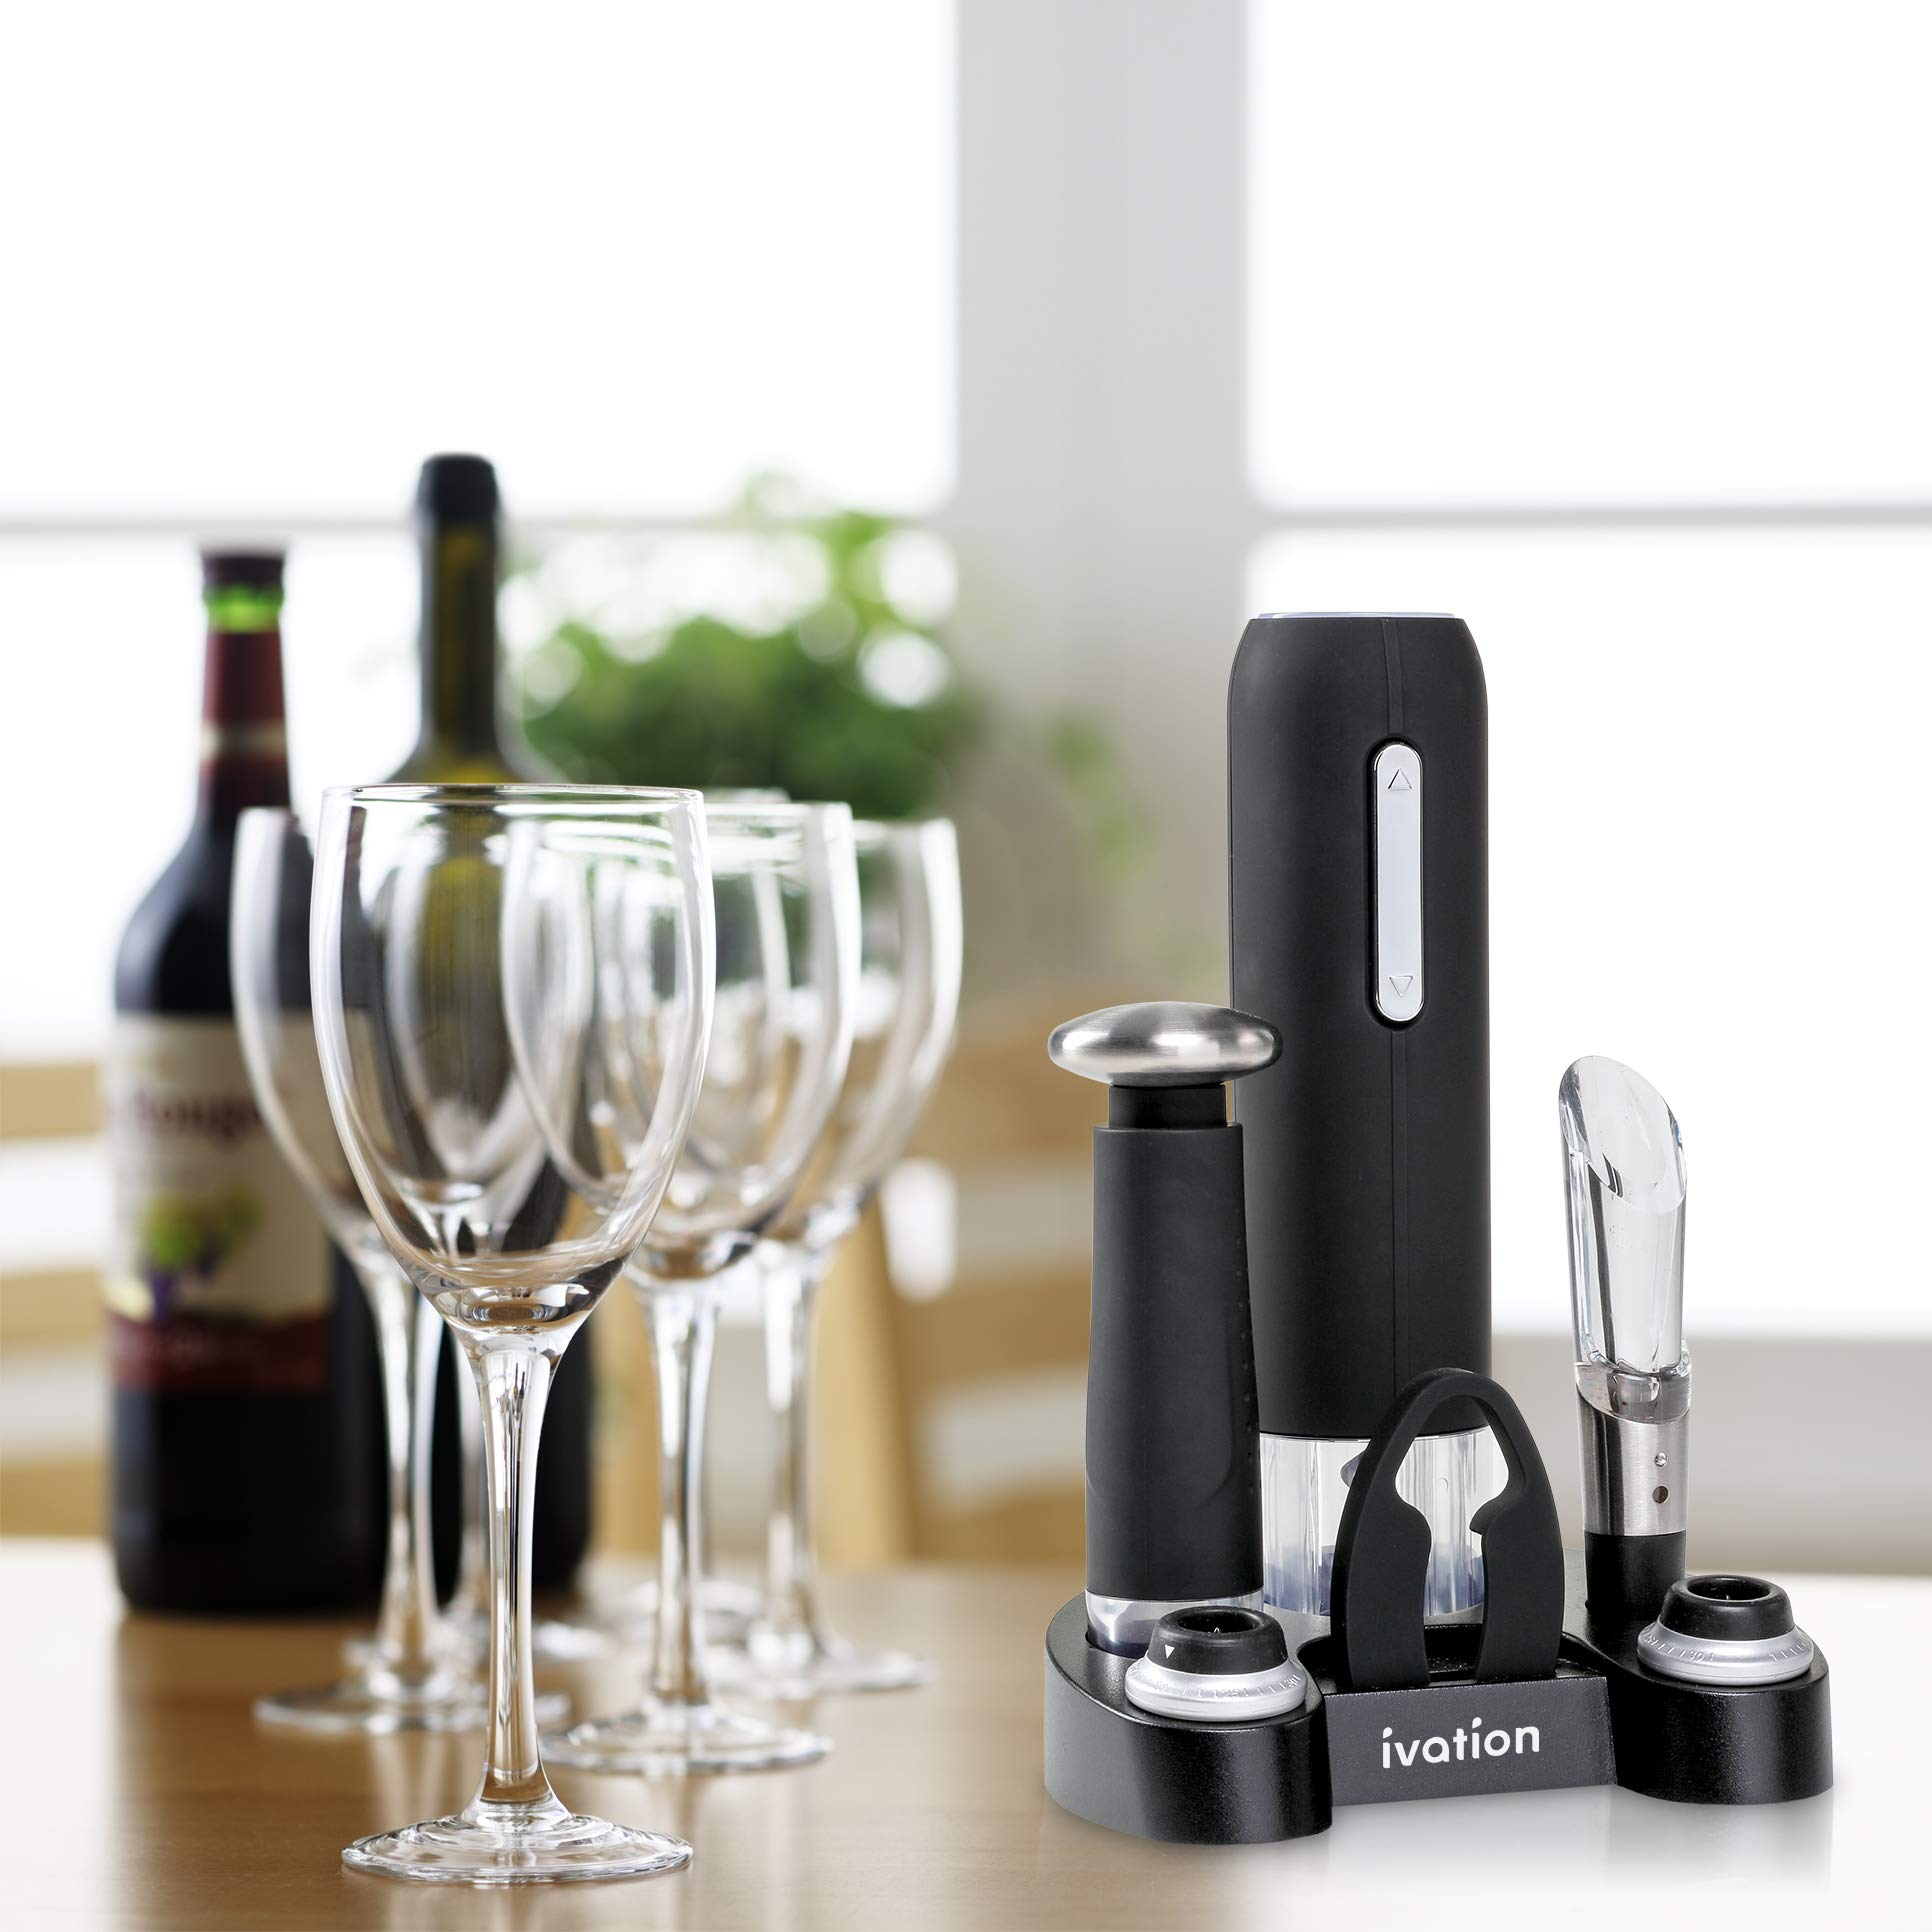 Ivation Wine Gift Set, Includes Electric Wine Bottle Opener, Wine Aerator, Vacuum Wine Preserver, 2 Bottle Stoppers, Foil Cutter & Charging Base by Ivation (Image #8)